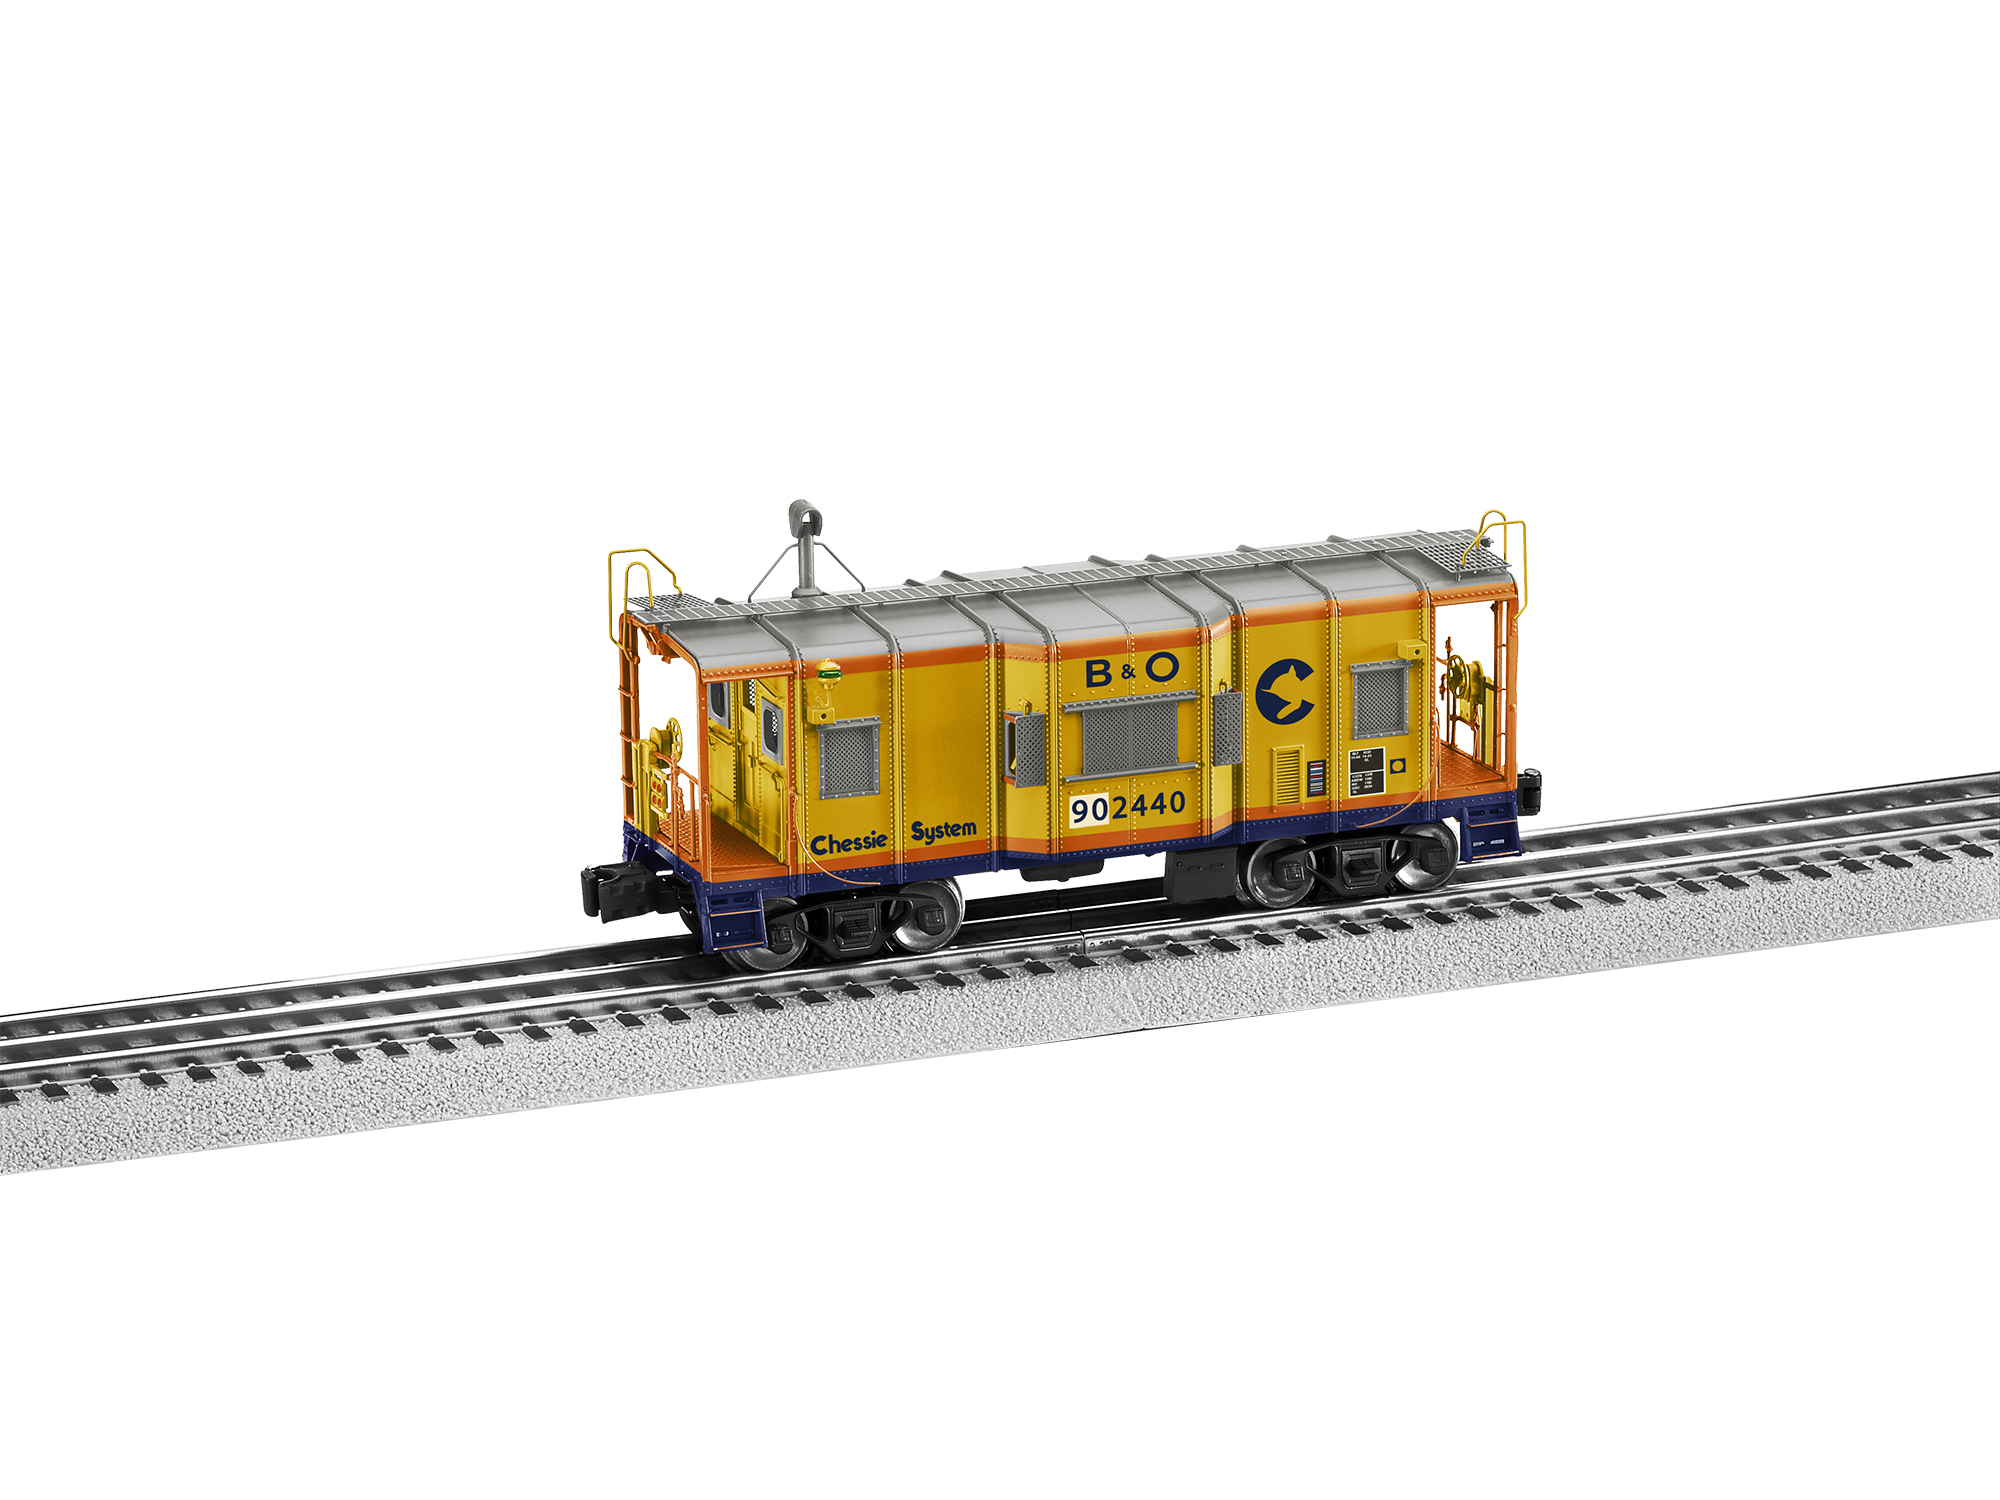 Lionel 2026240 O I12 Caboose 3-Rail Chessie System 902440 434-2026240